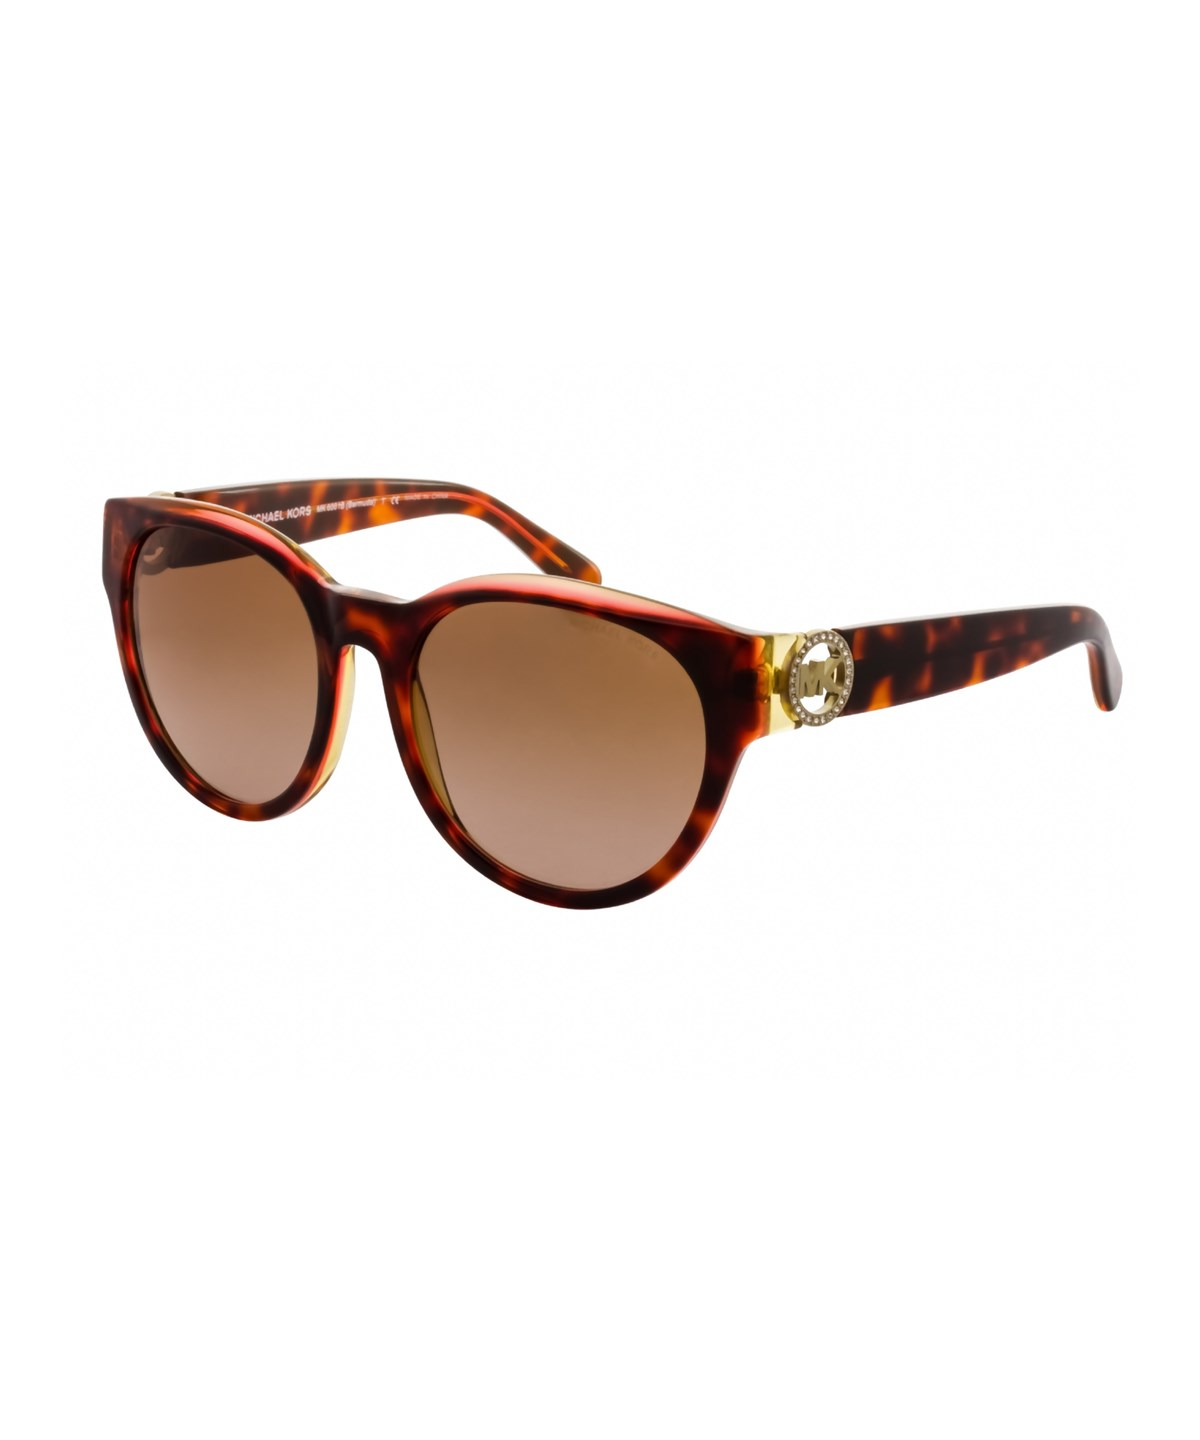 MICHAEL KORS Mk6001B - Bermuda 300413' in Havana/Brown Gradient